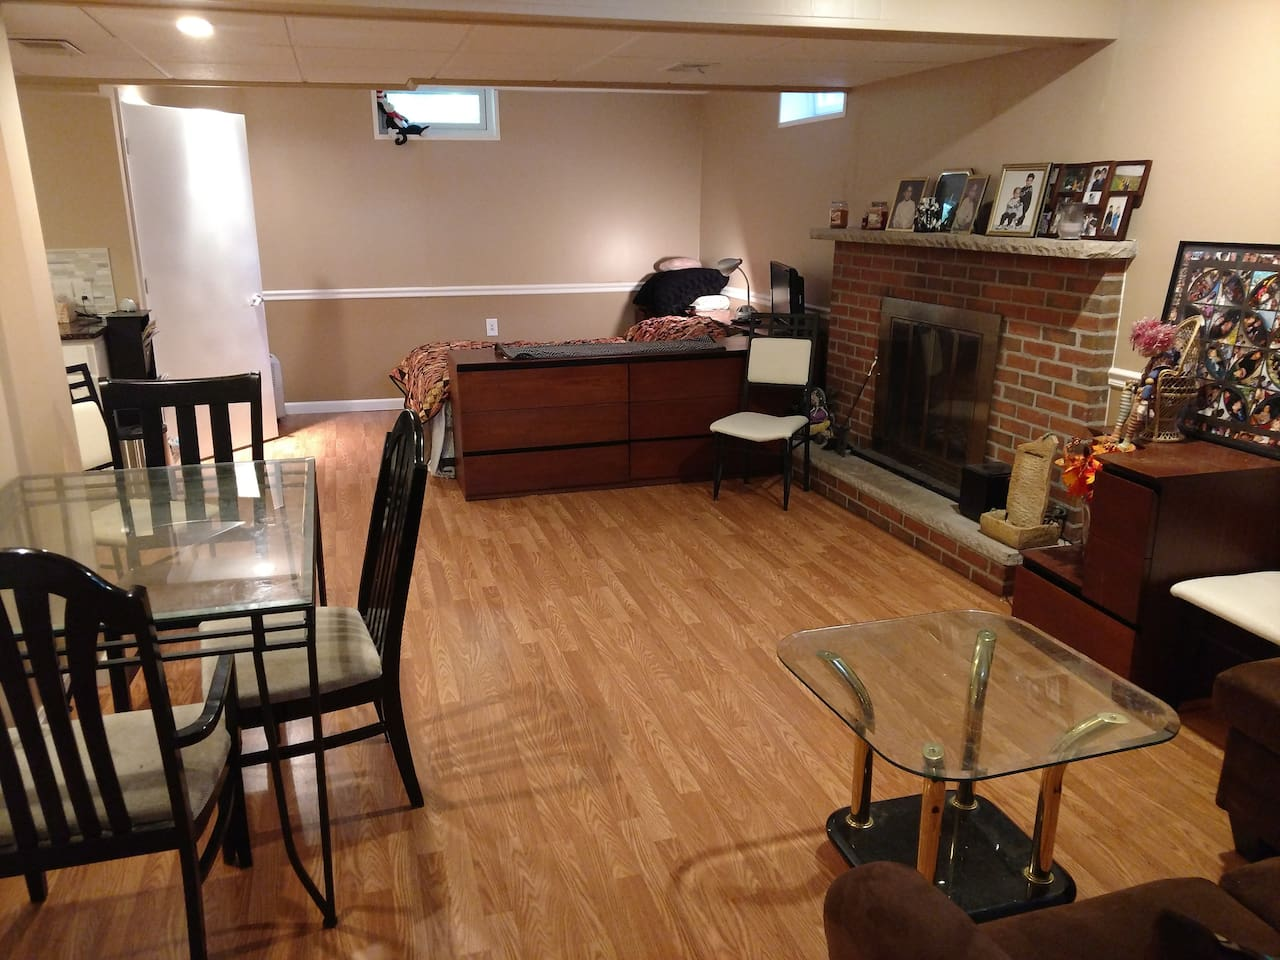 This entire space is yours to rent. It includes private bathroom, kitchen (with utensils, plates, microwave, refrigerator, microwave, garbage disposal, and hot plate), working fireplace, couch, dining table, queen-sized bed, TV with Netflix and HBO Go, WiFi, and private entrance through the garage.